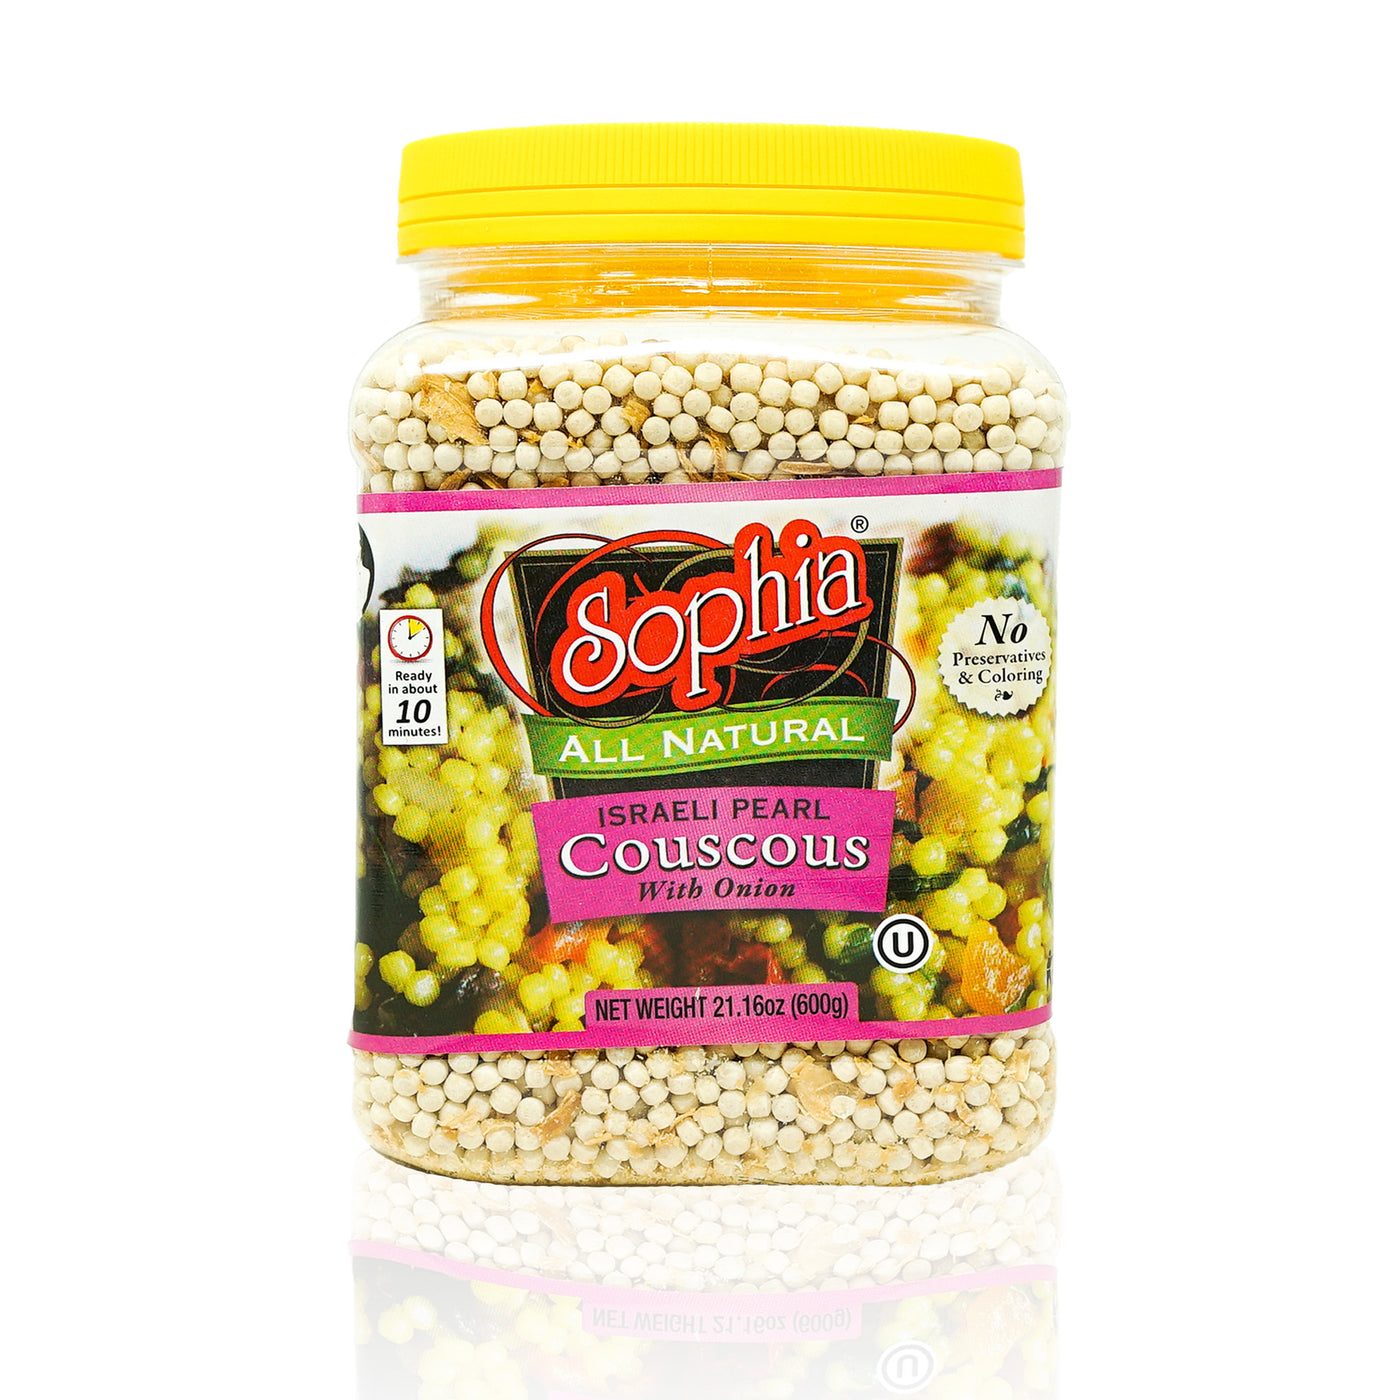 Sophia Couscous - Israeli Toasted Pearl Couscous w/ Onion